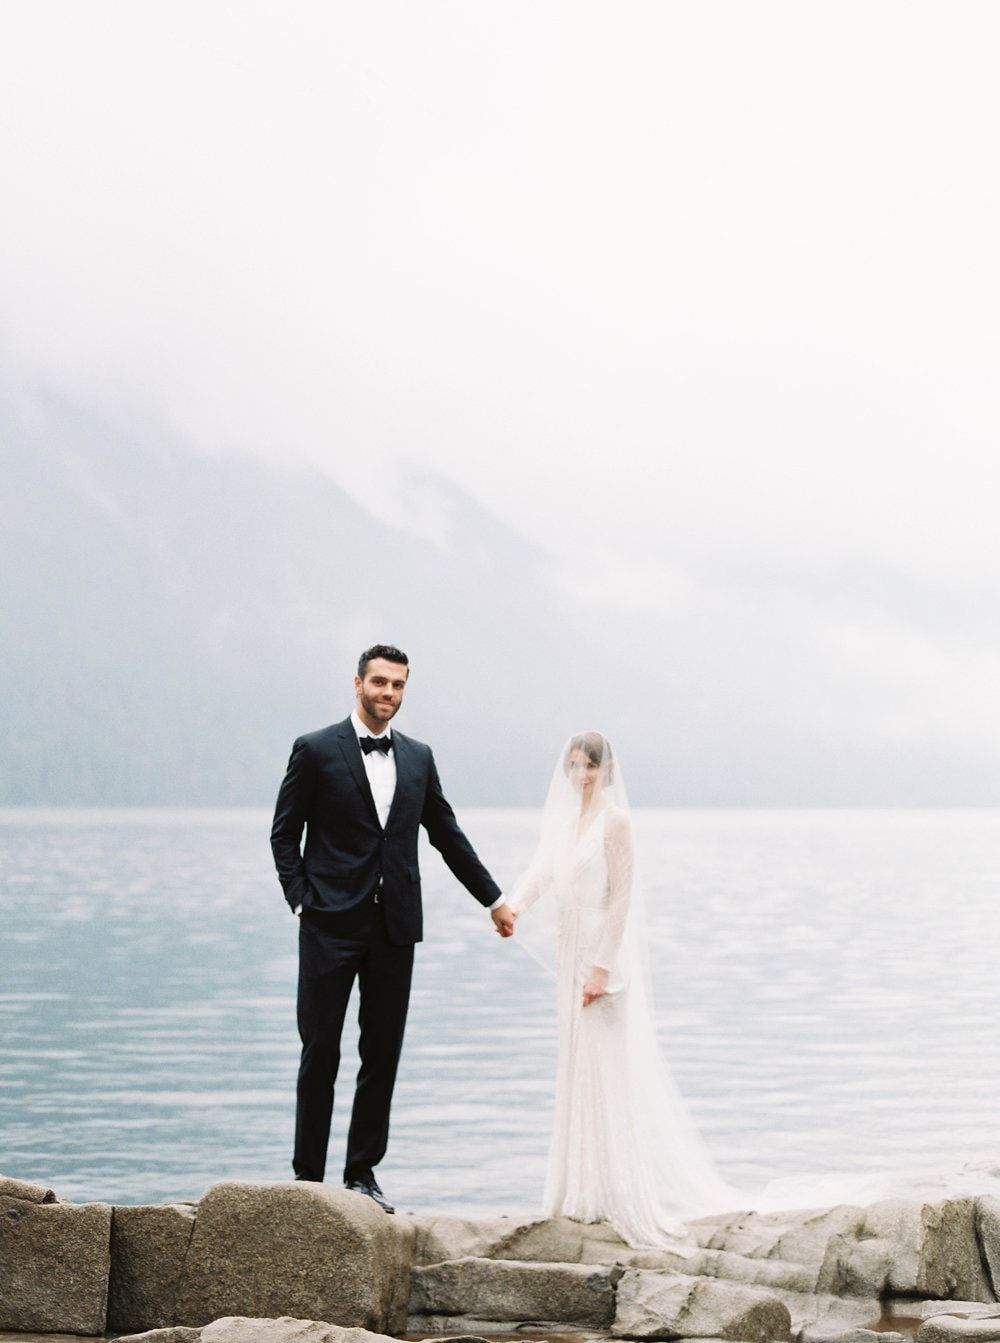 Ethereal Scenery Of British Columbia Is Perfect Wedding Backdrop